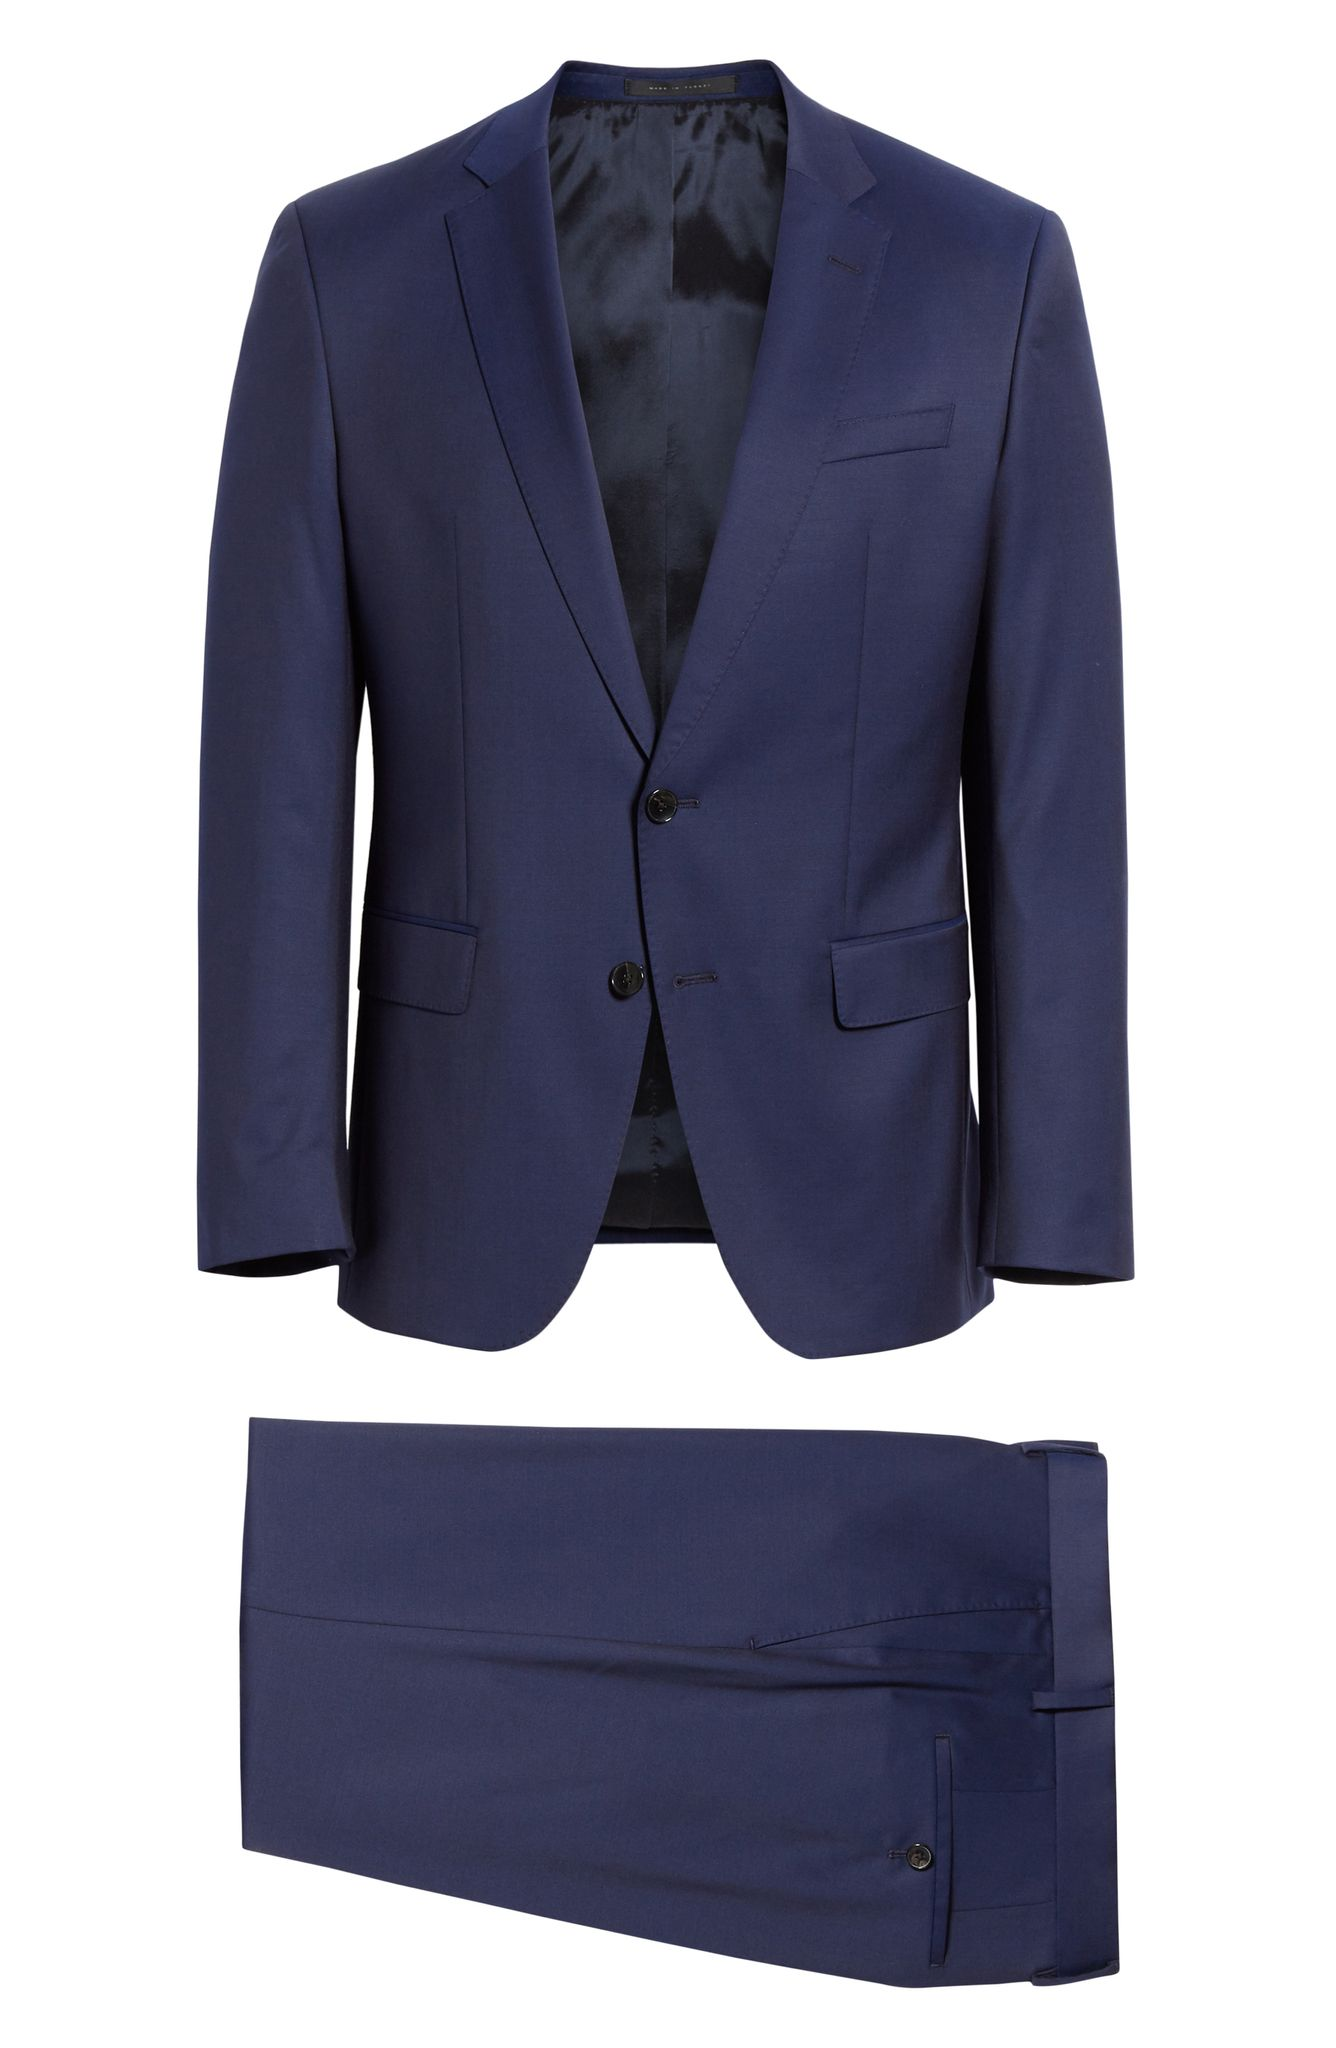 BOSS HUGO BOSS Slim-Fit Wool Suit (normally $895): NOW $598.90 (Image: Nordstrom){ }